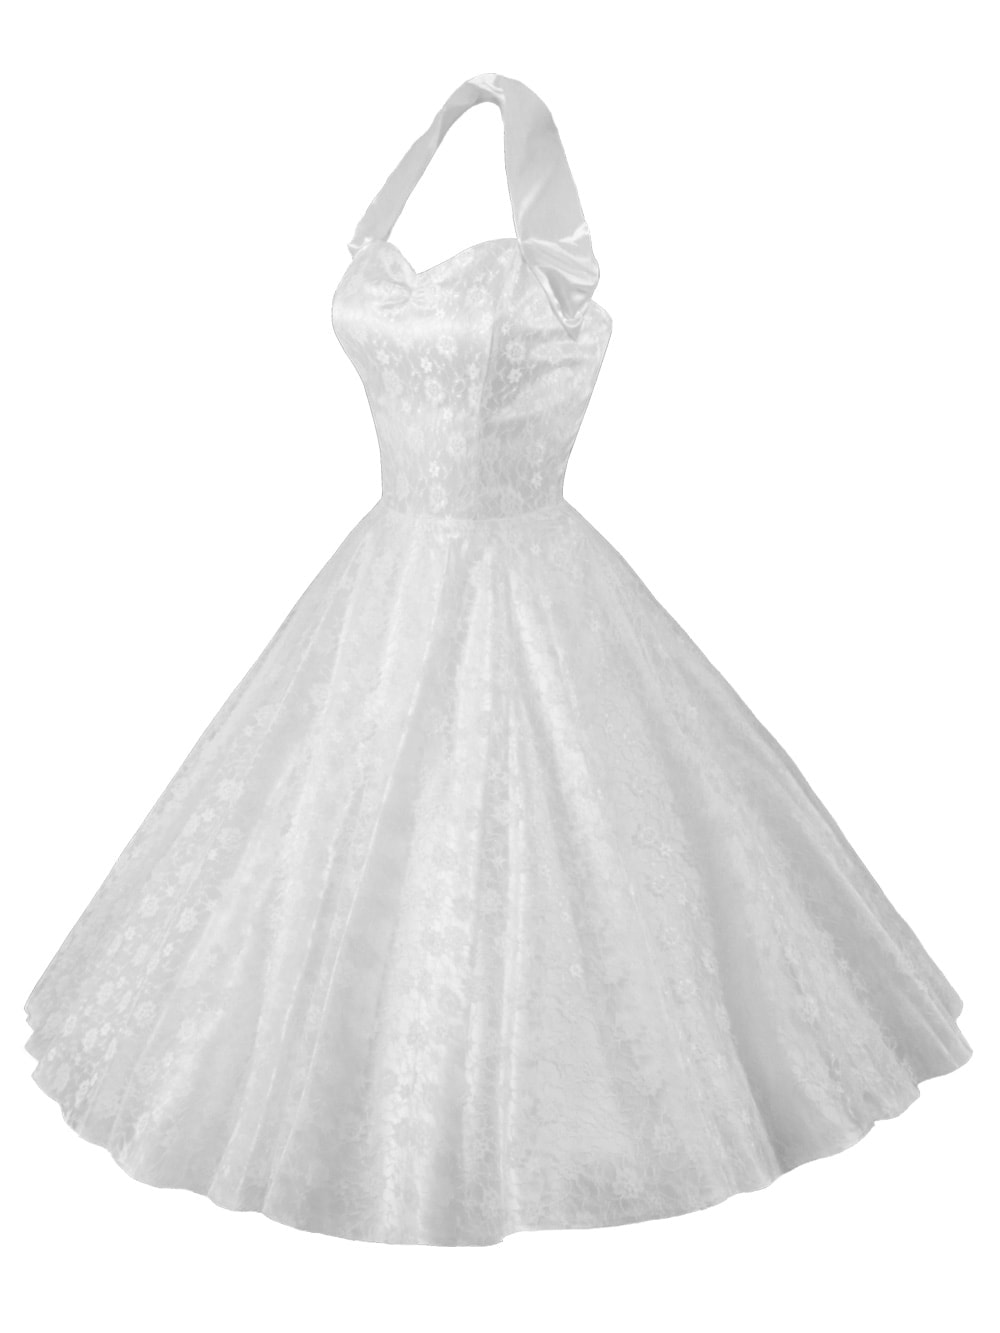 1950s Halterneck Luxury White Satin Lace Dress From Vivien